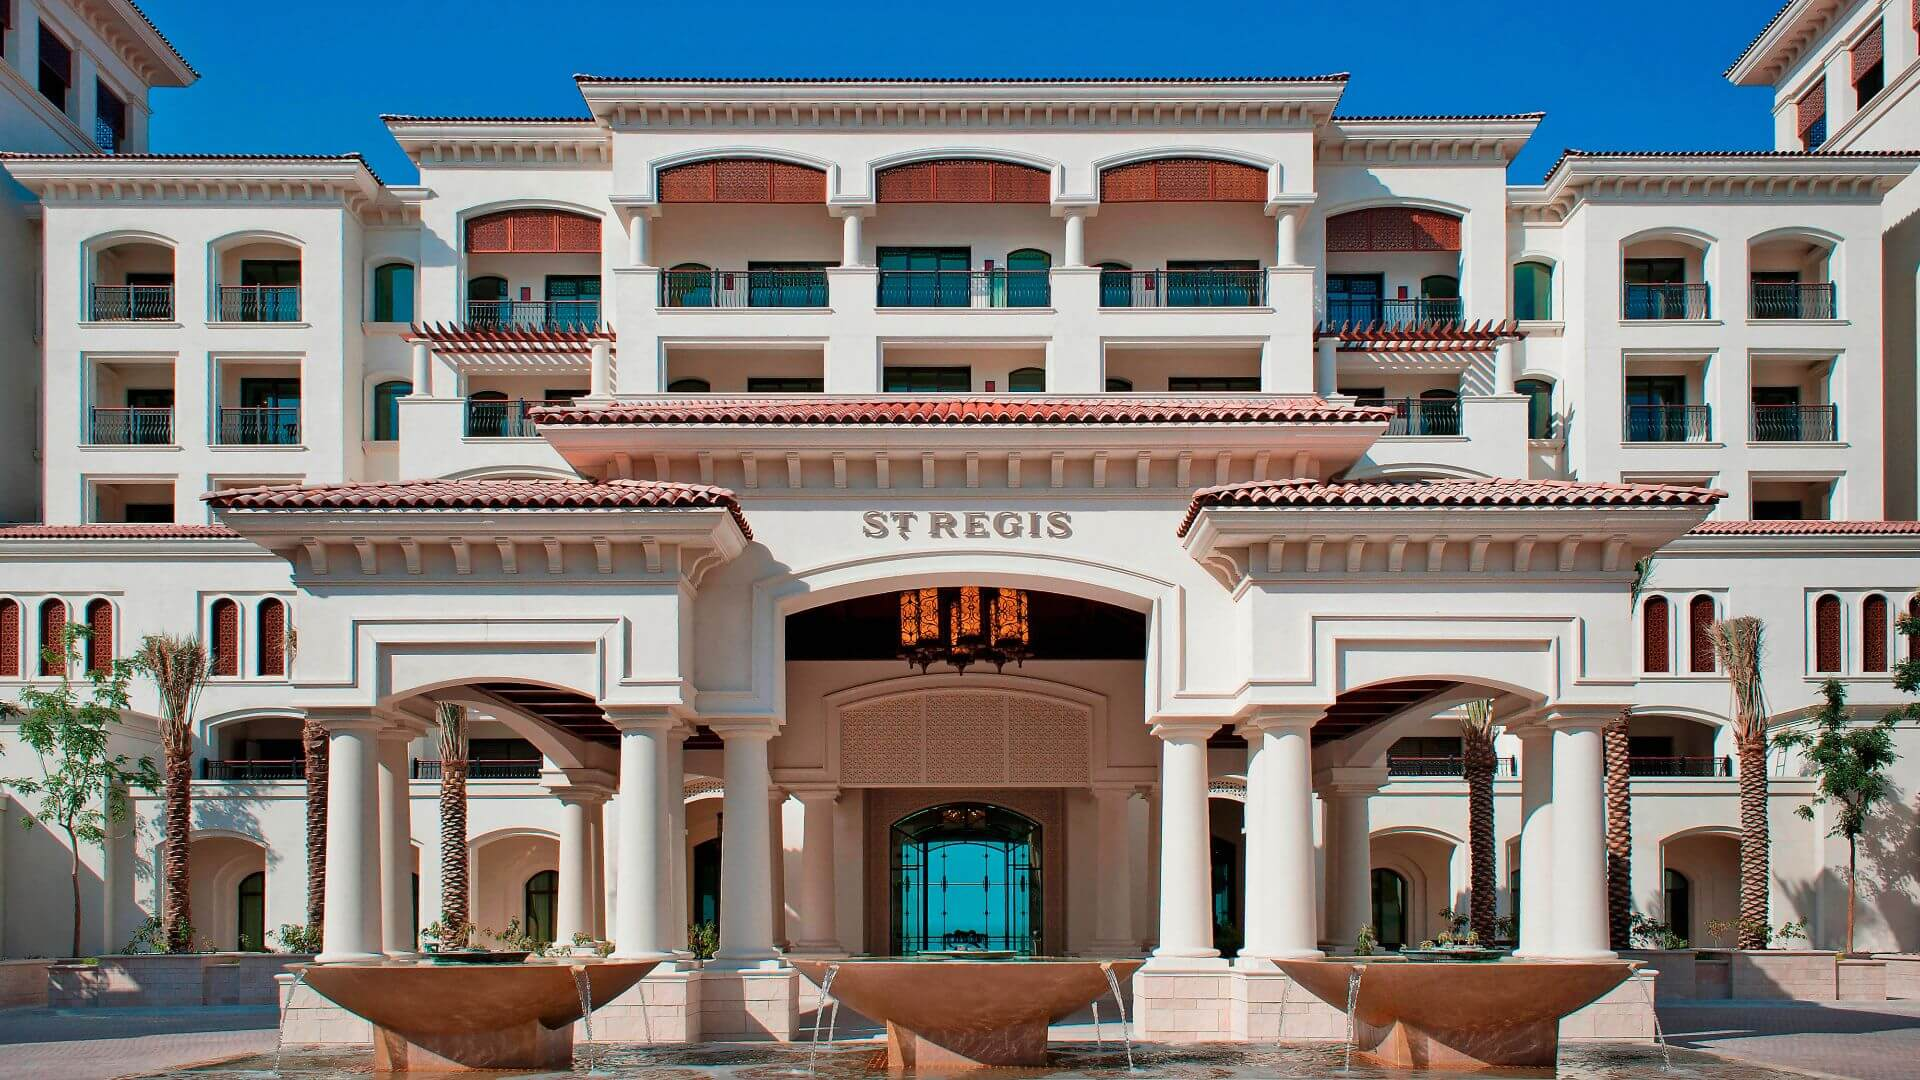 The St Regis Saadiyat Island Resort Abu Dhabi